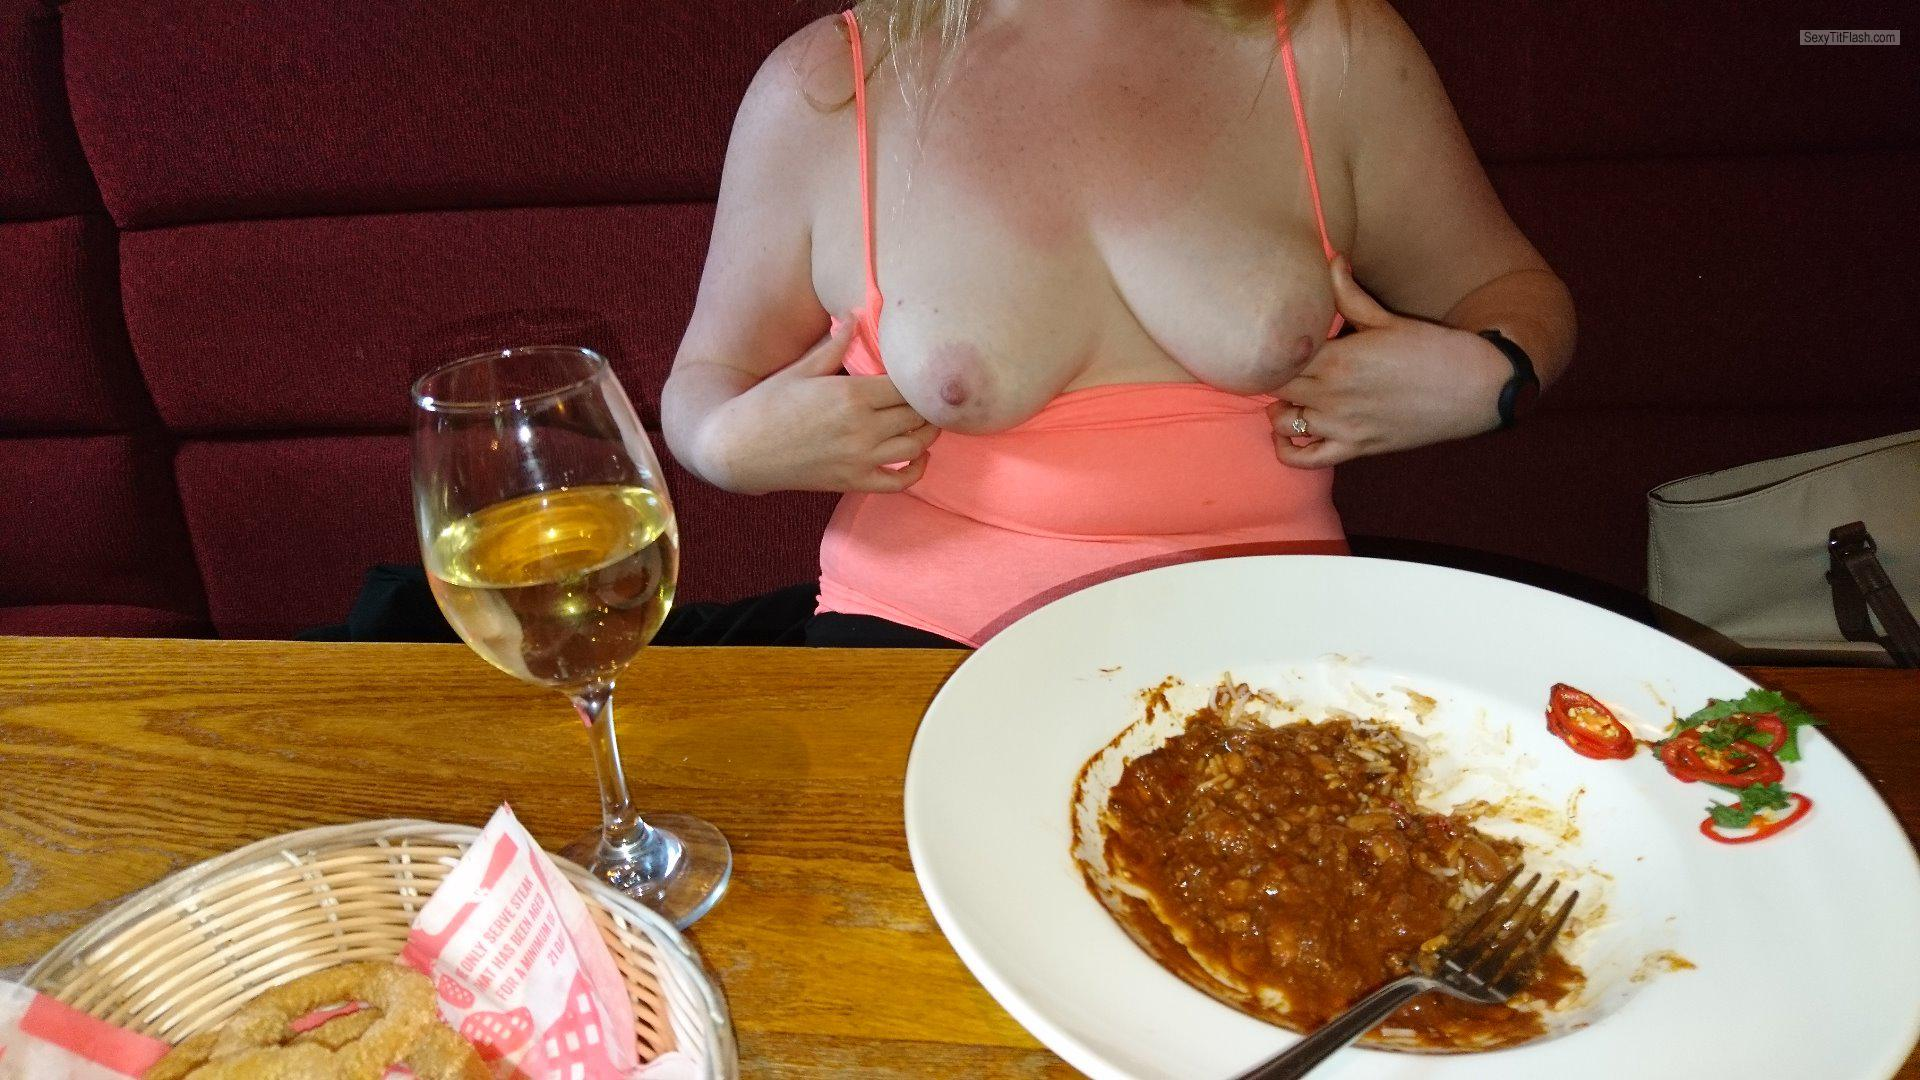 Tit Flash: My Medium Tits - Topless Brewers Fayre Prestwick from United Kingdom